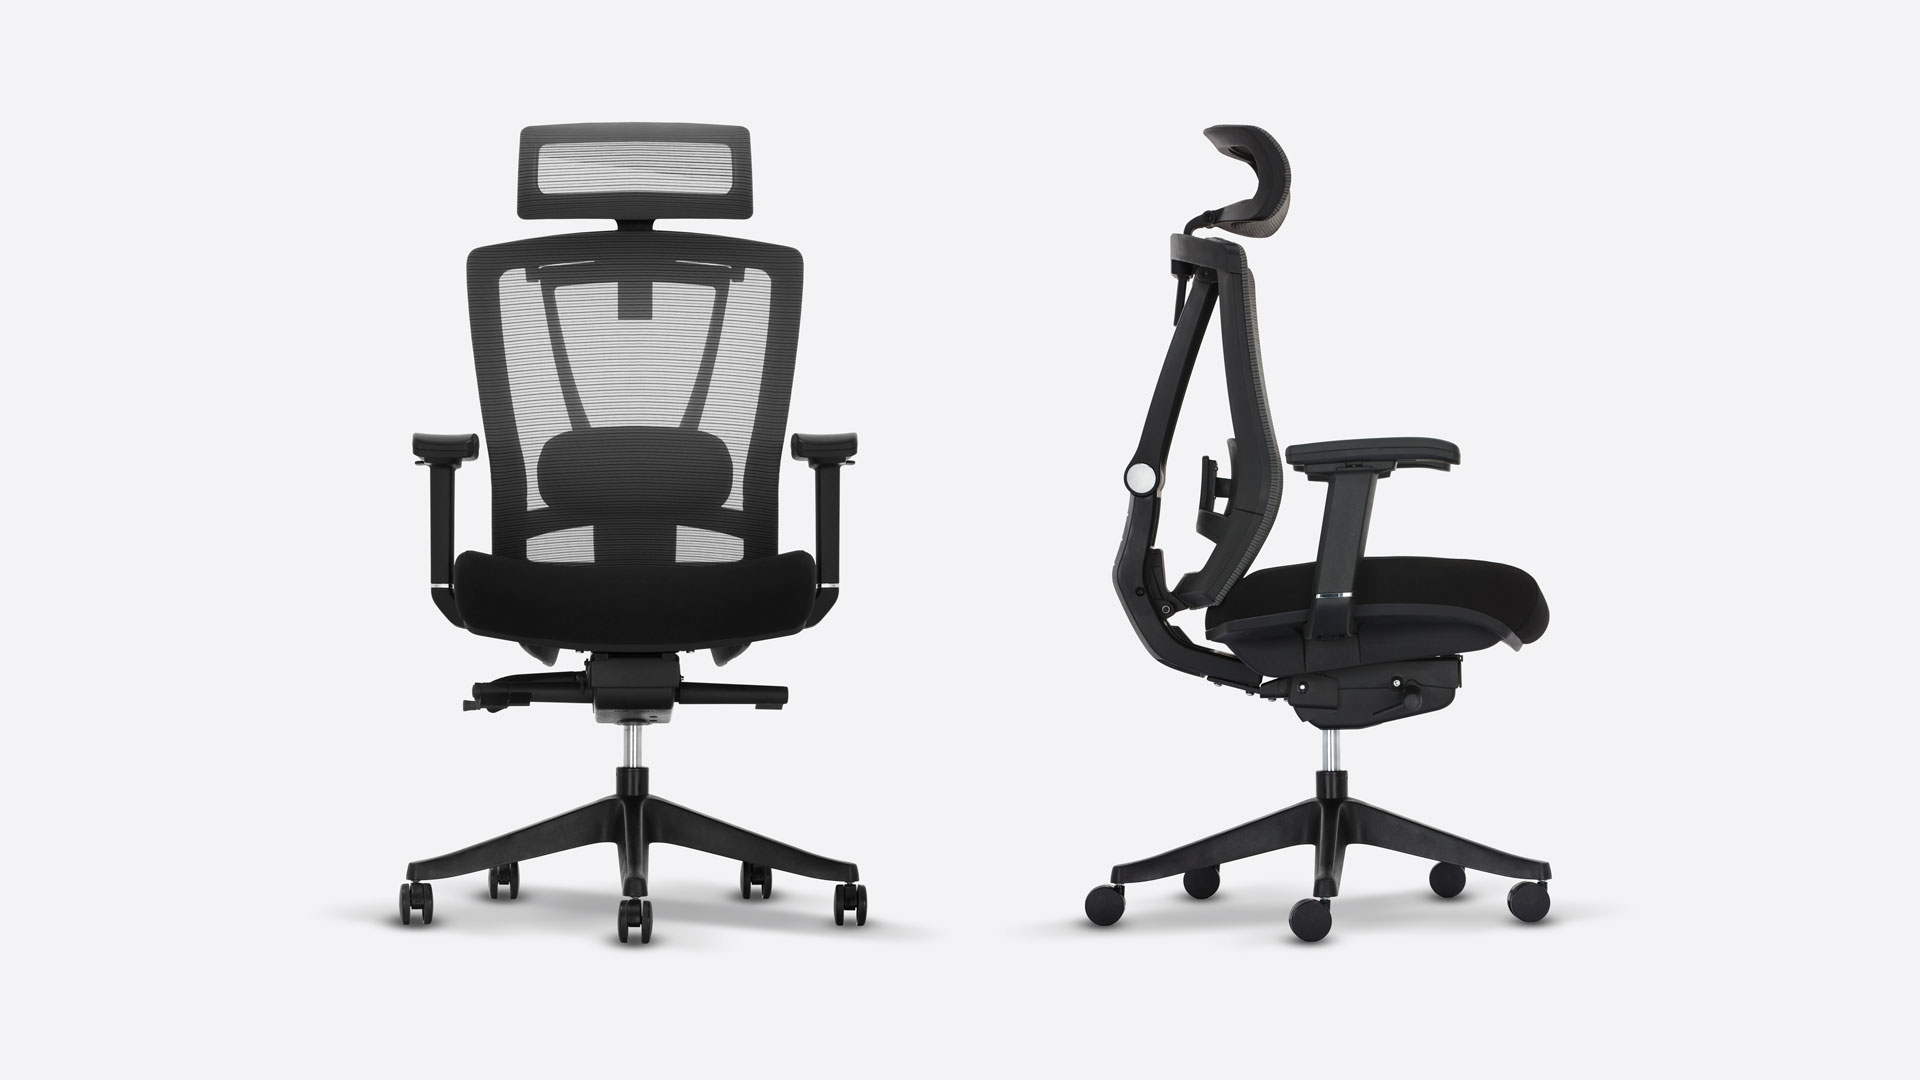 how are chairs made poppy high chair nz to choose ergonomc for short people standingdesktopper there on the market that do think about peoples height